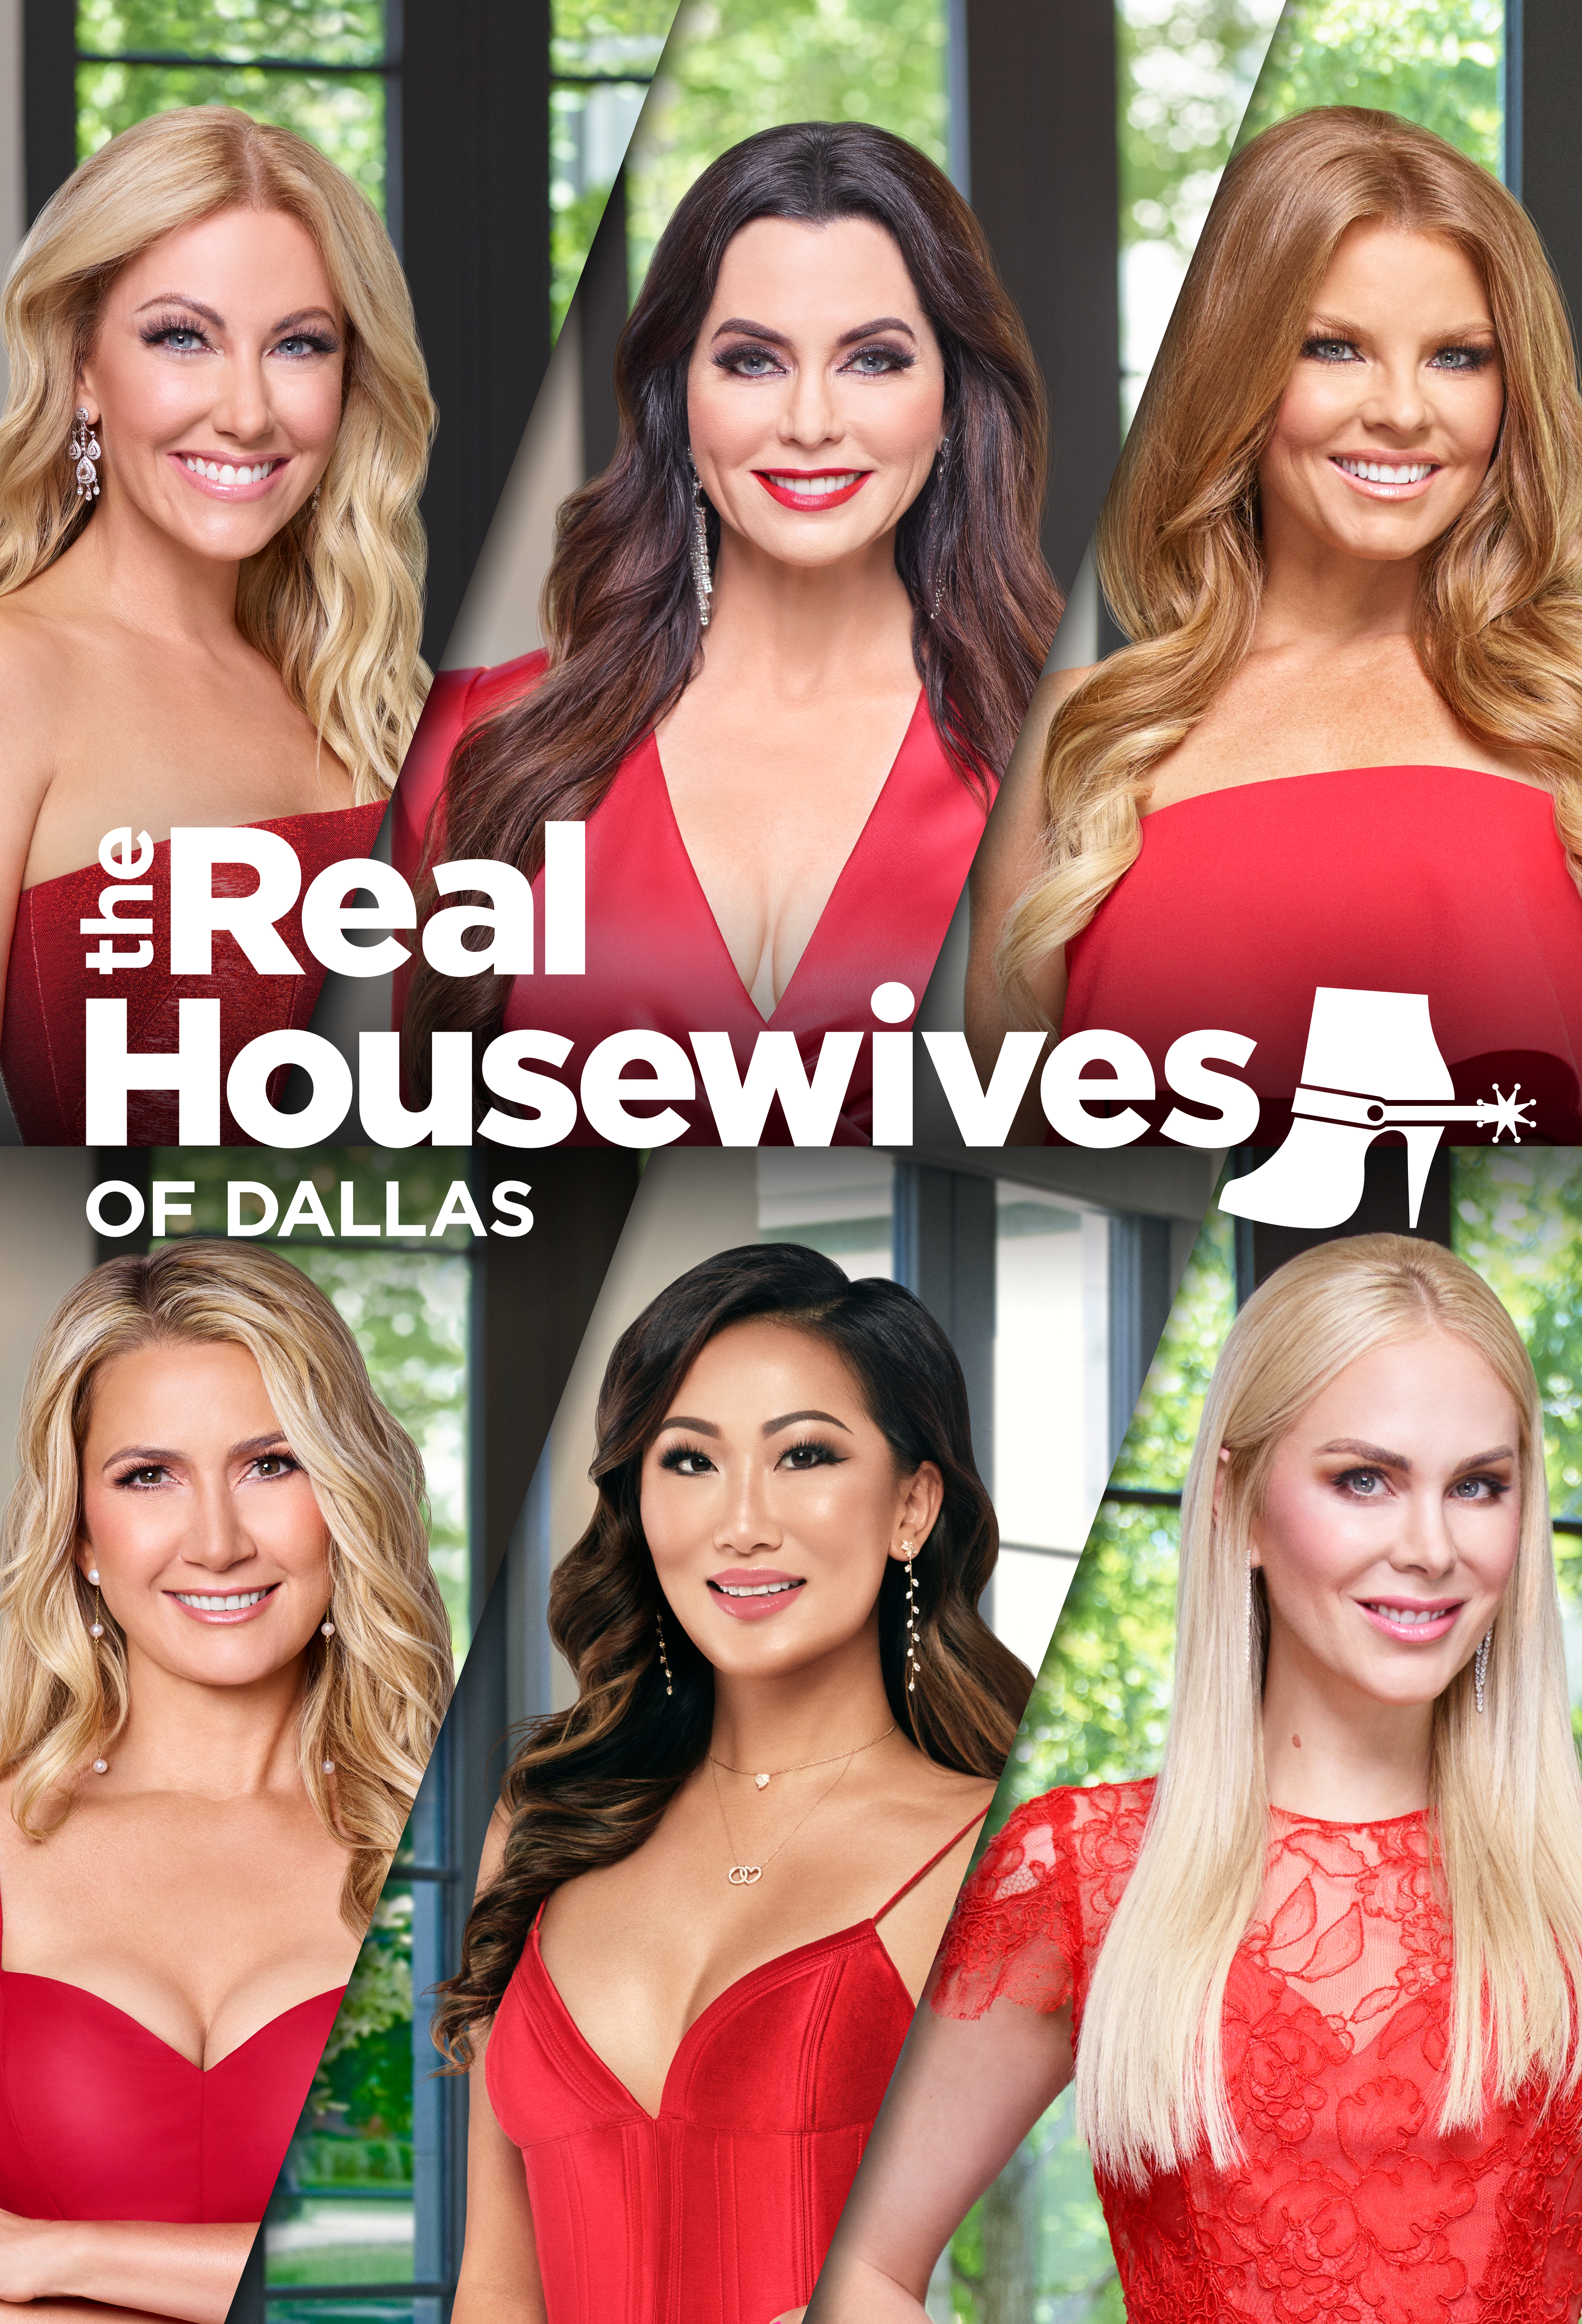 The.Real.Housewives.of.Dallas.S05E02.1080p.WEB.h264-BAE